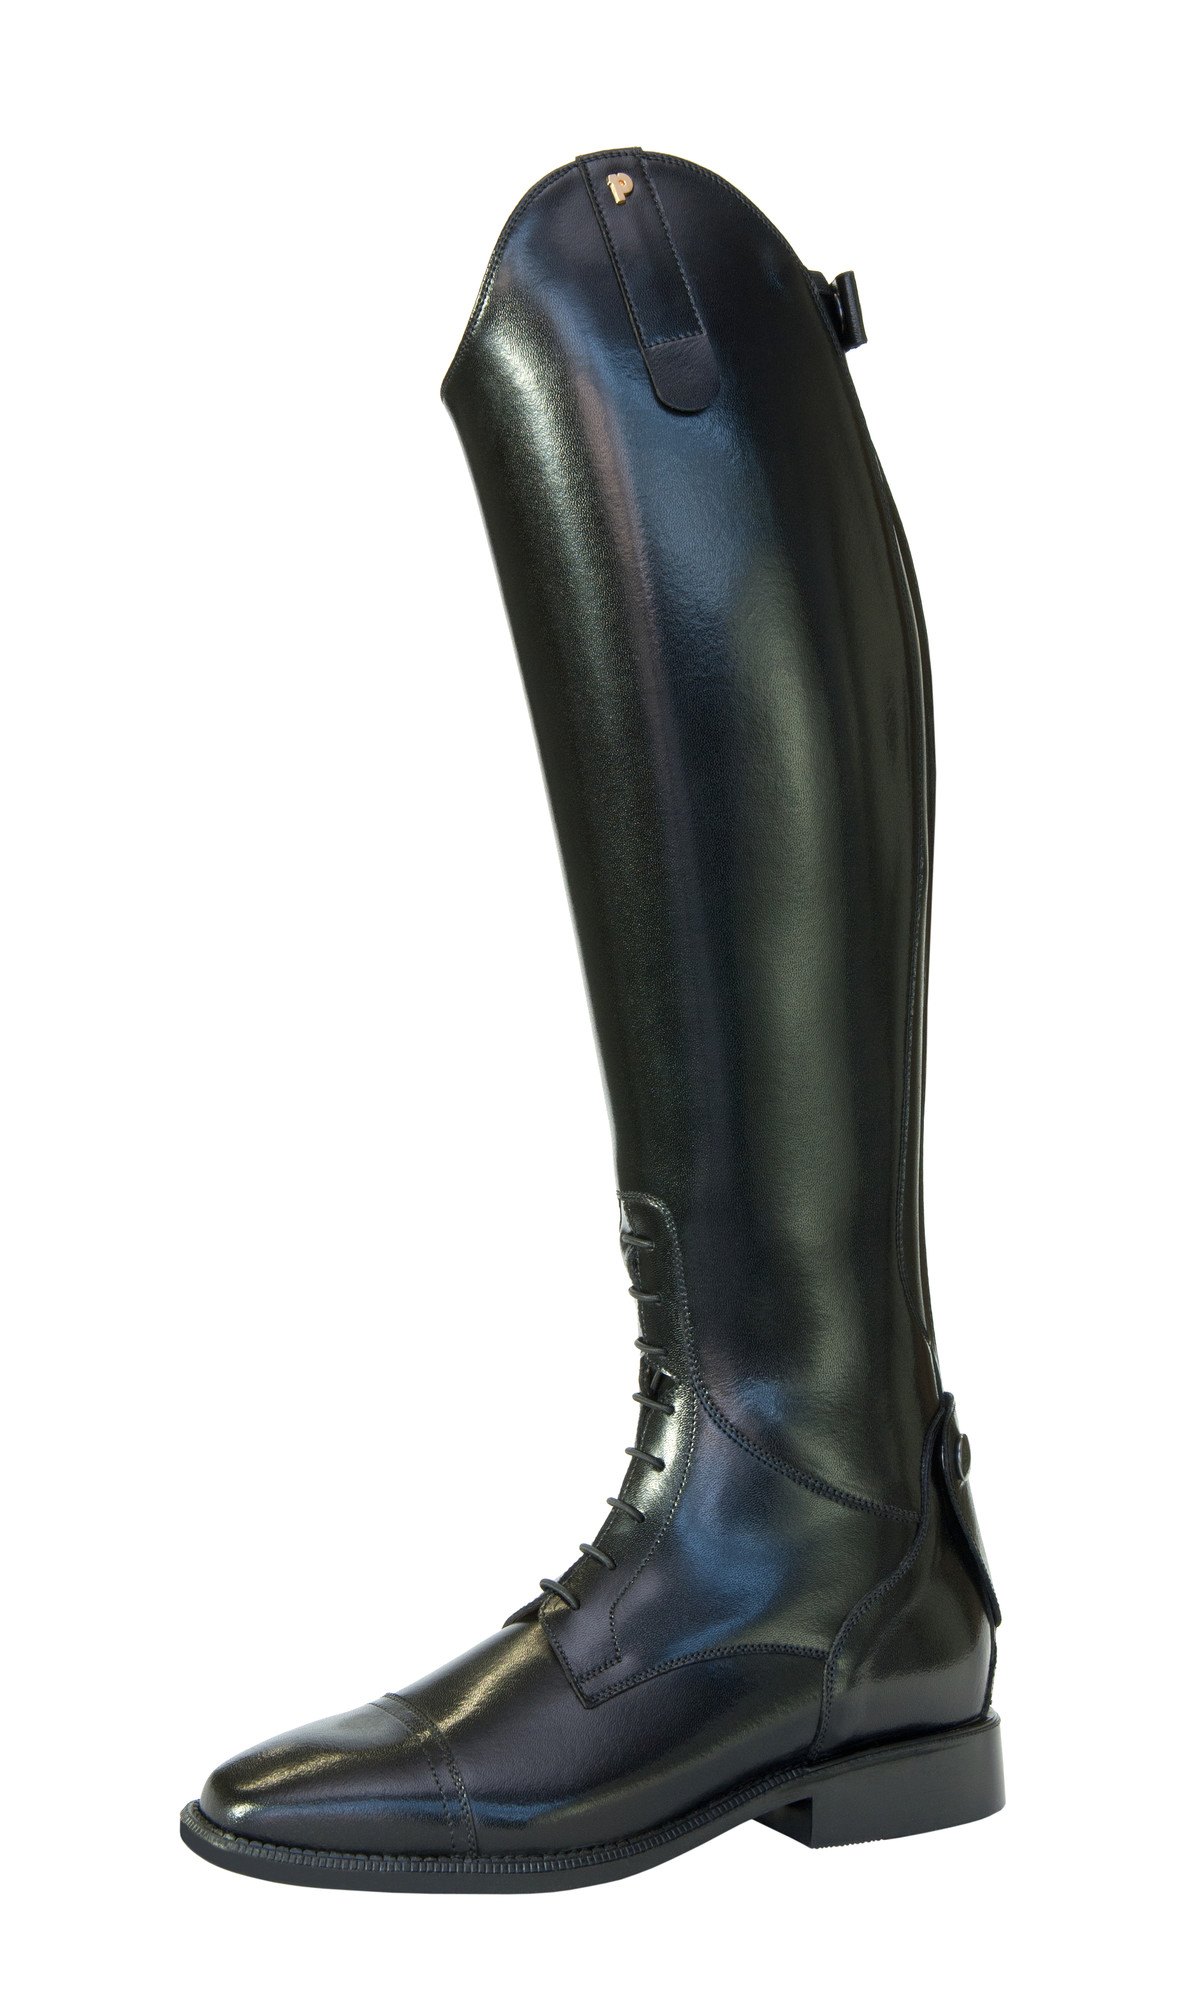 Petrie Melbourne Reitstiefel